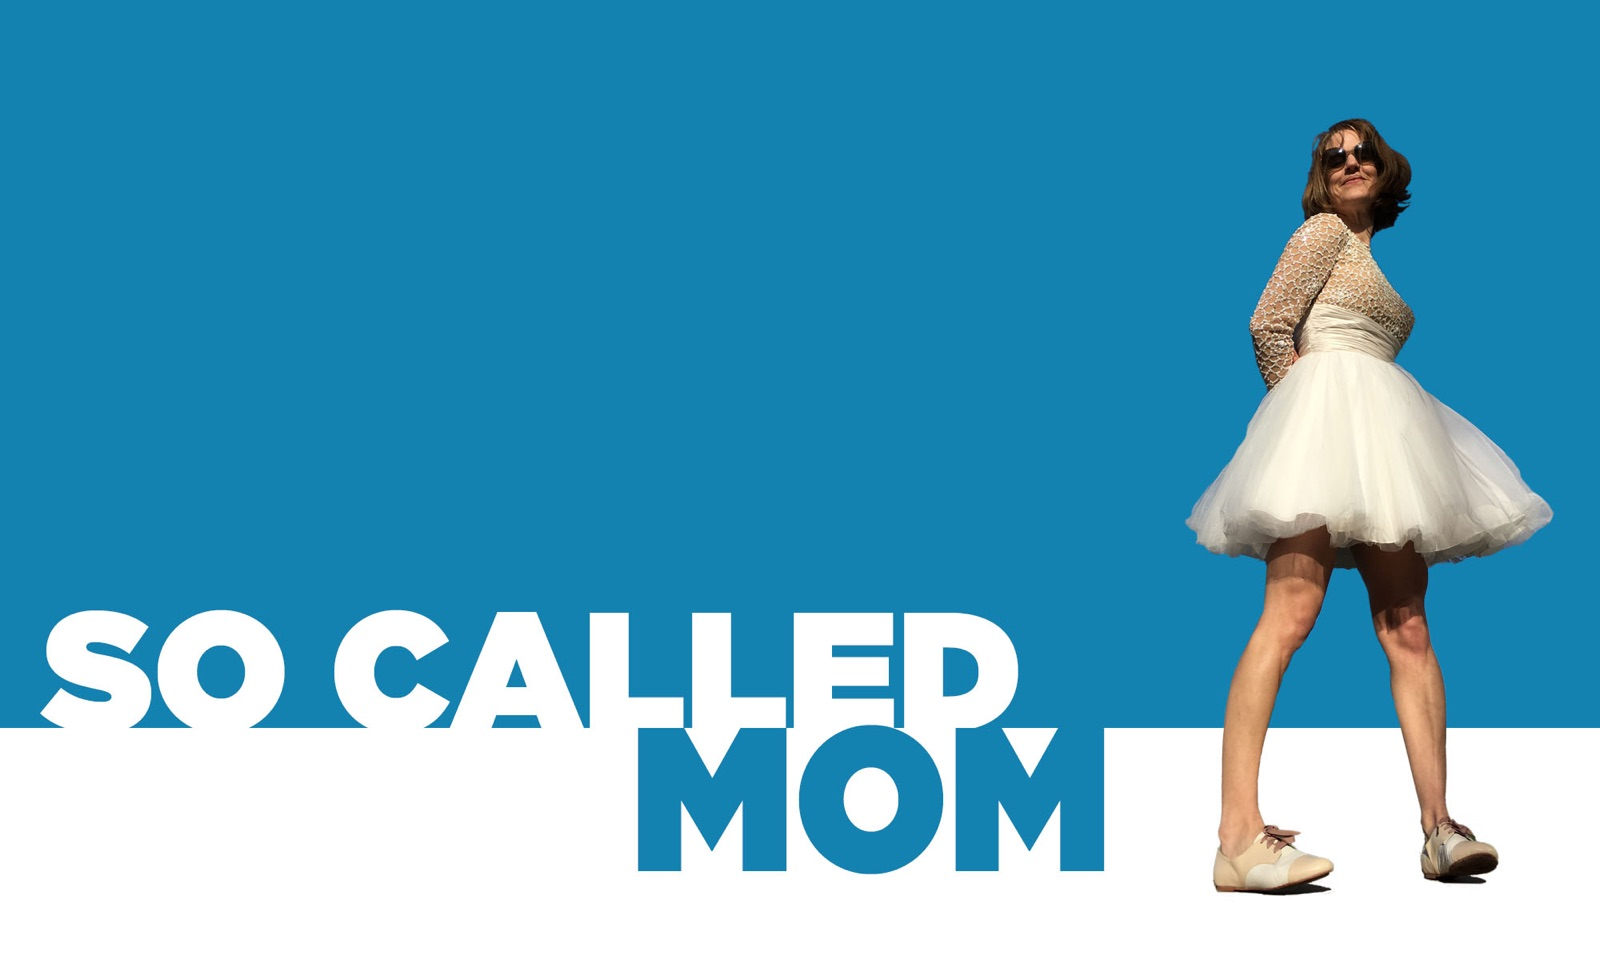 so called mom, reality show, youtube, blended family, mom life